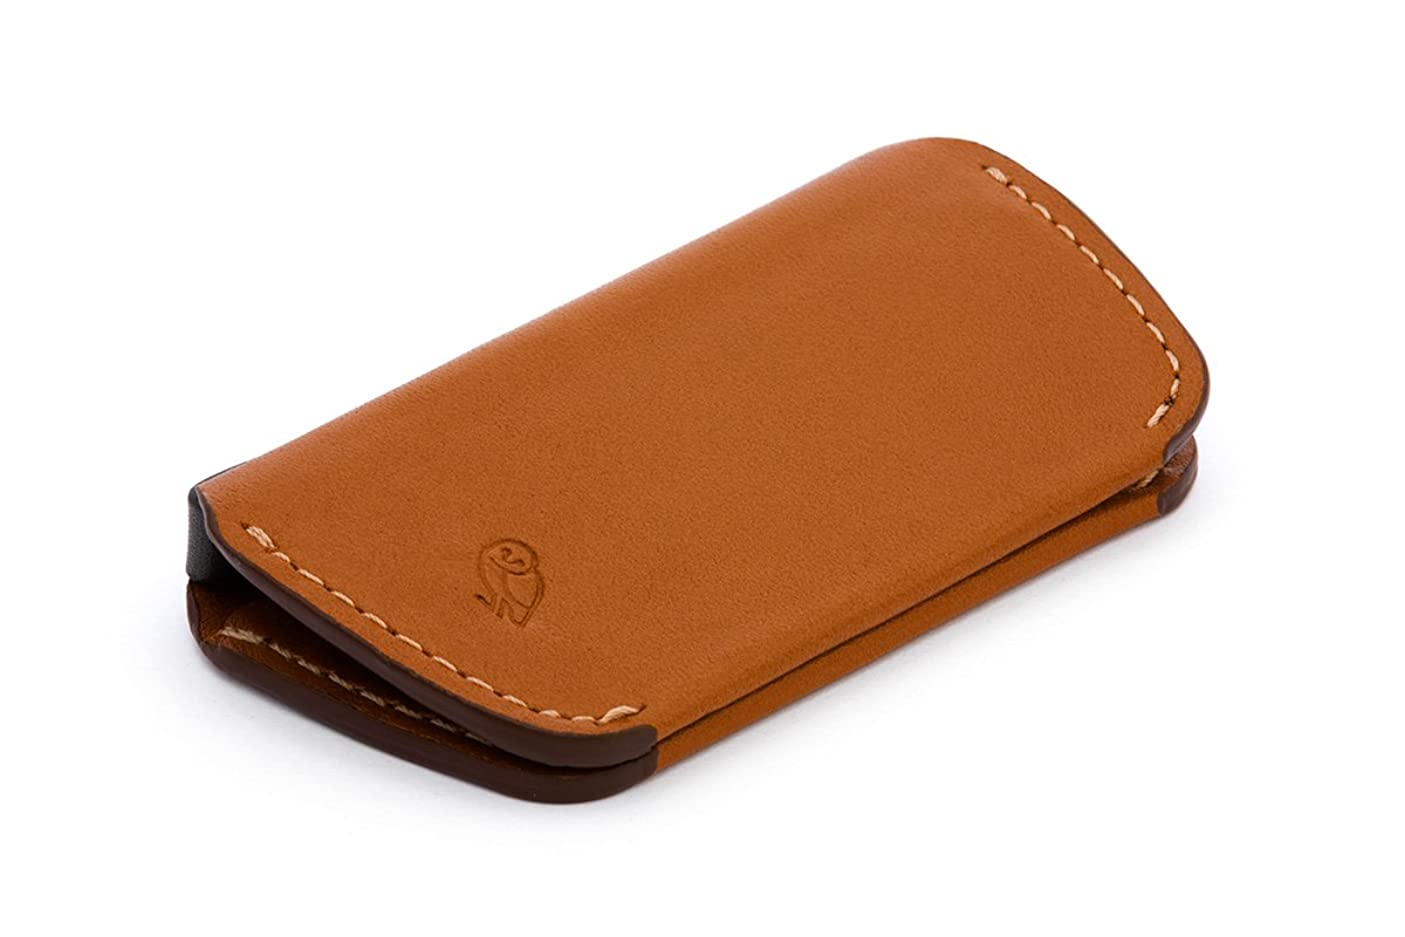 Bellroy Leather Key Cover kuepoqtwwgx911